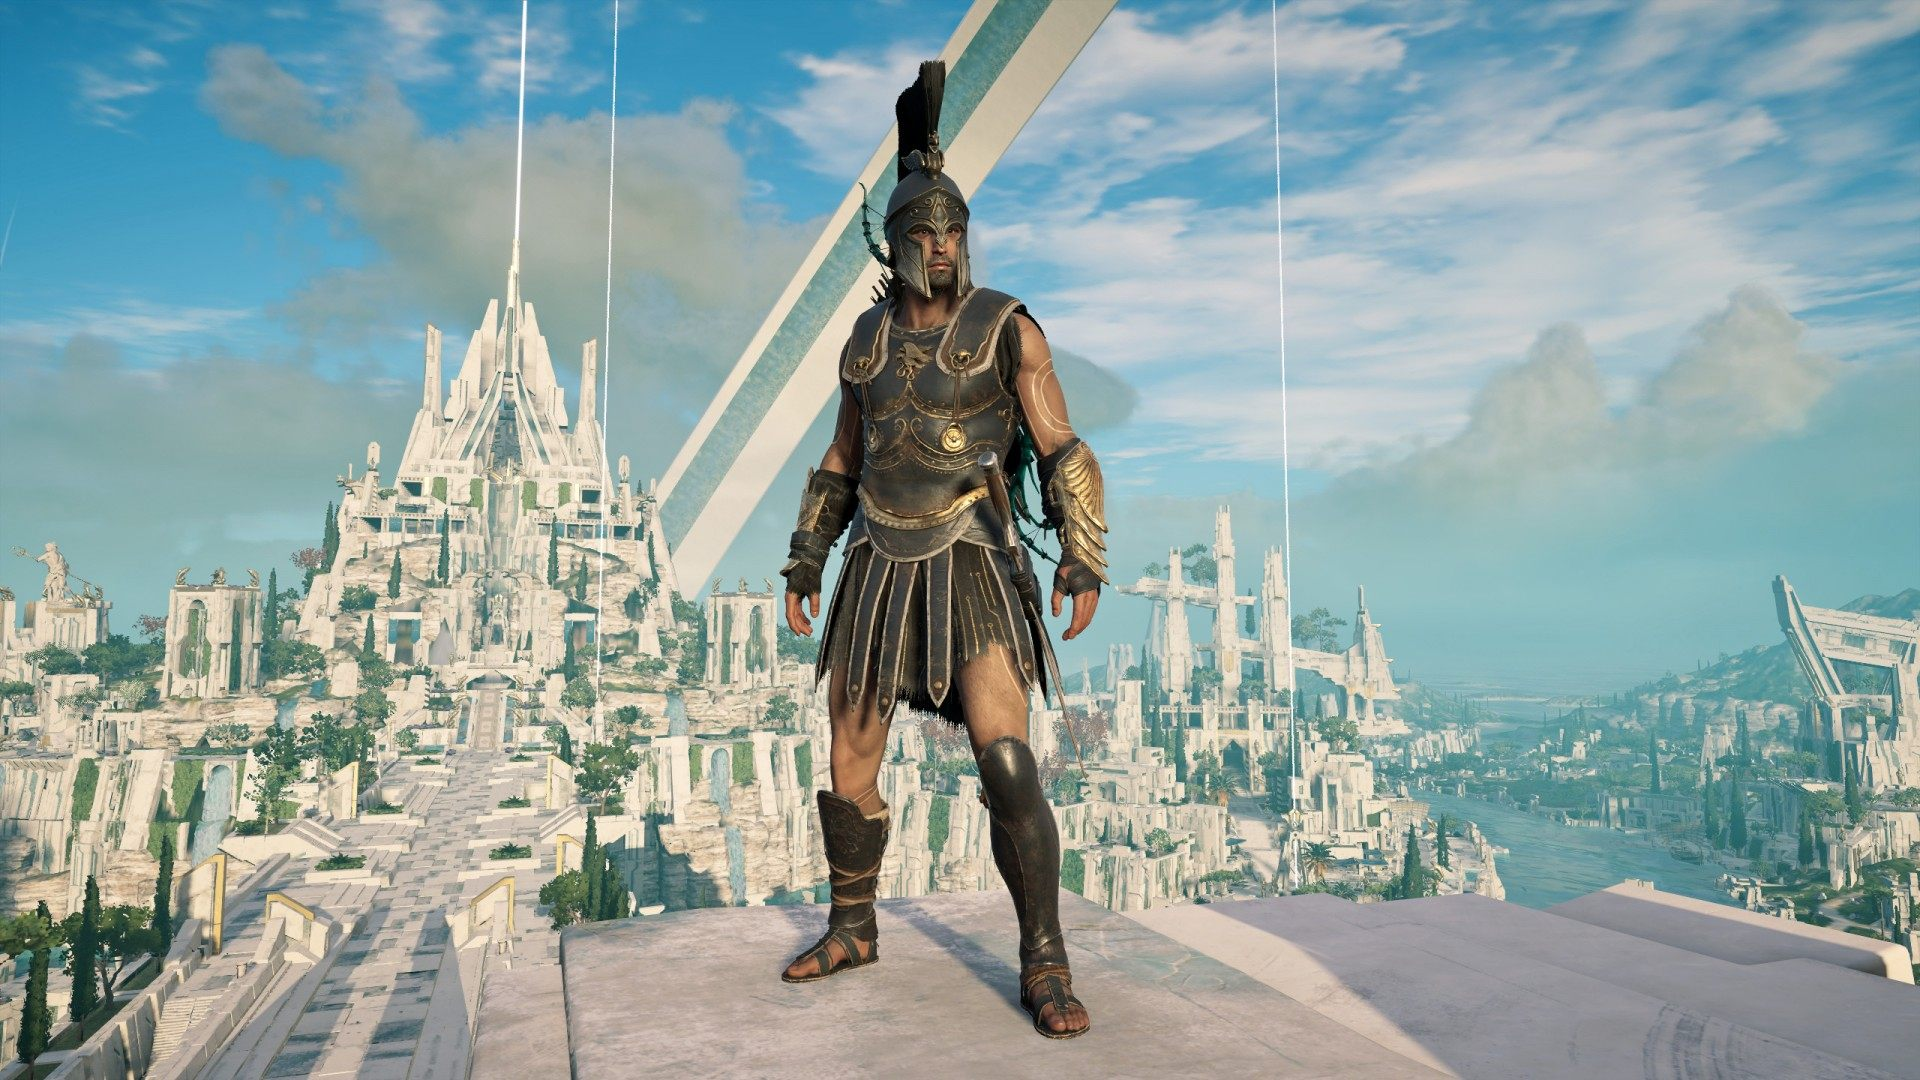 Rightfully Yours, Assassin's Creed Odyssey Quest